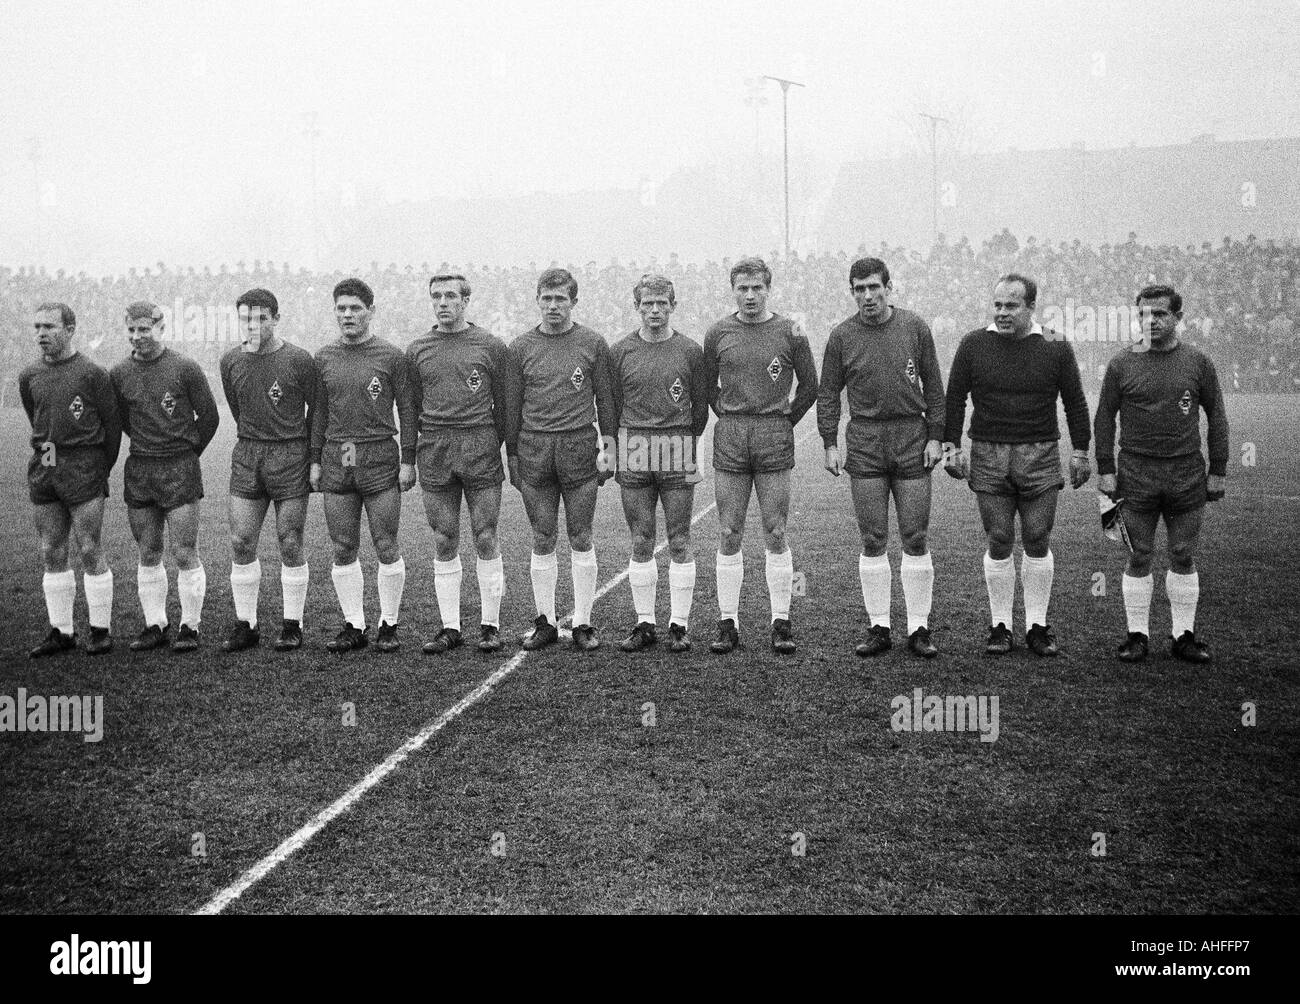 football, Bundesliga, 1965/1966, Boekelberg Stadium, Borussia Moenchengladbach versus 1. FC Cologne 2:3, team photograph, shot of Moenchengladbach, f.l.t.r. Bernd Rupp, Berti Vogts, Herbert Laumen, Heinz Wittmann, Guenter Netzer, Jupp Heynckes, Rudolf Poe - Stock Image